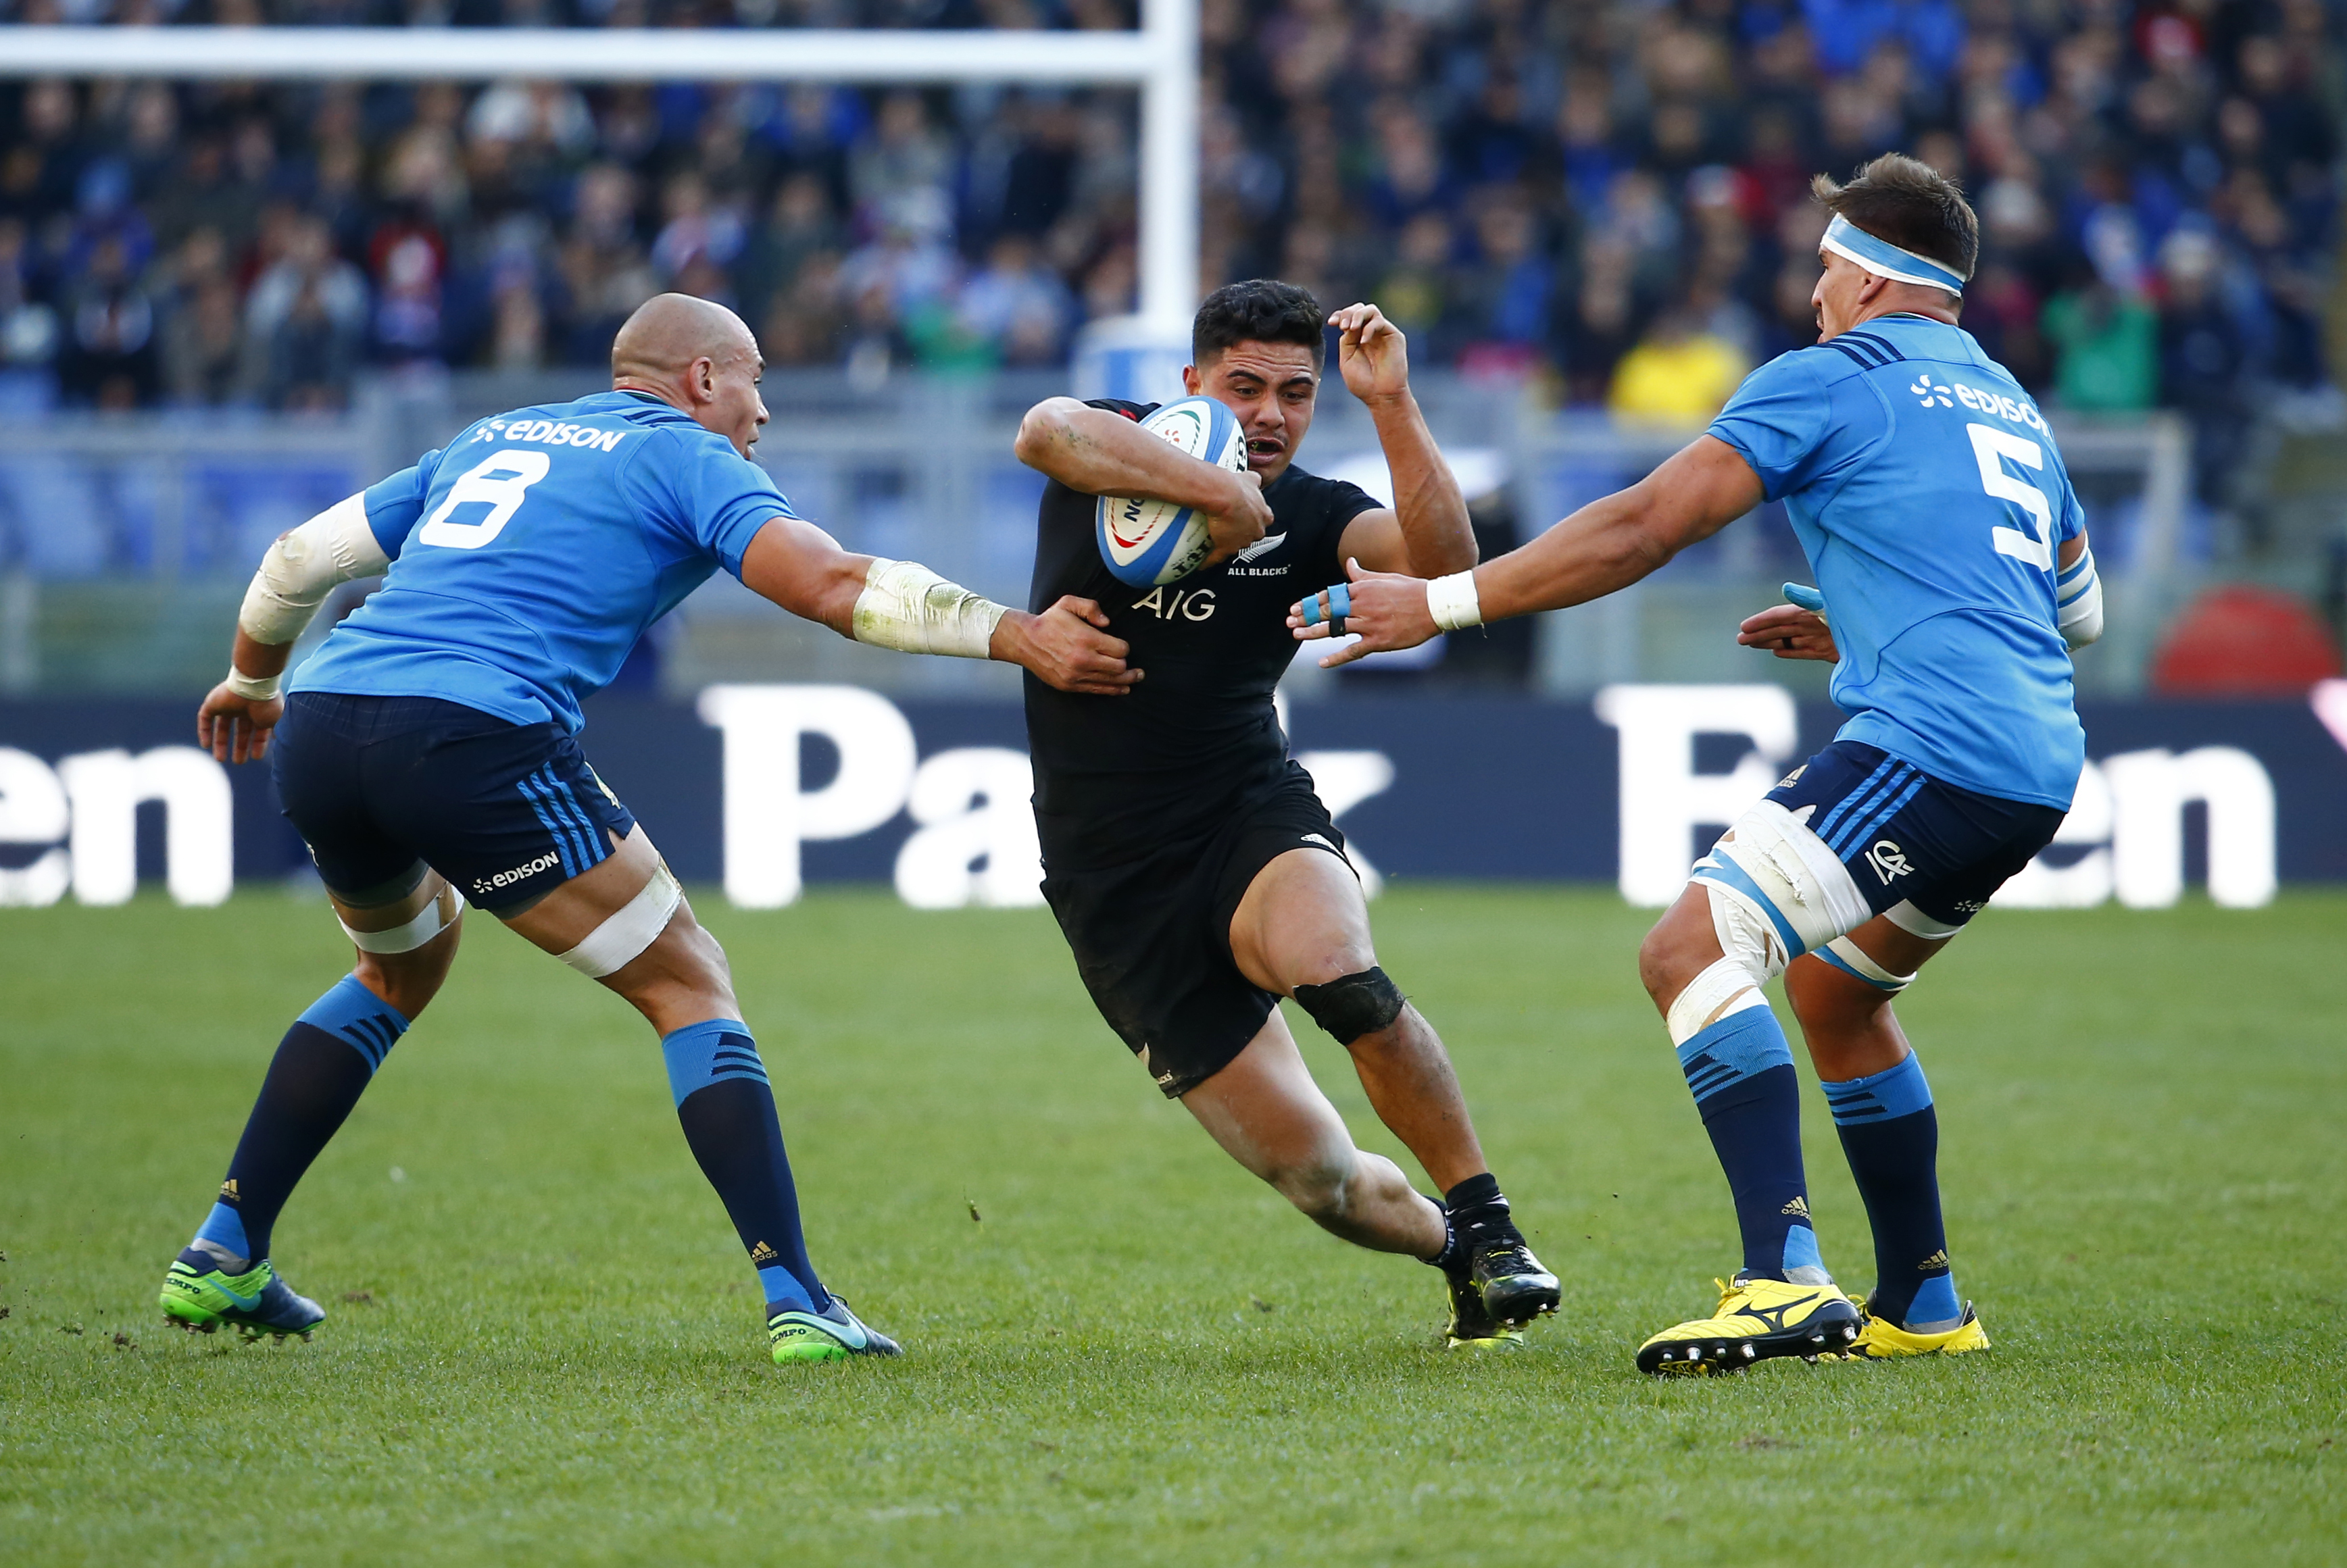 Rugby: New Zealand run riot against Italy after Irish shock